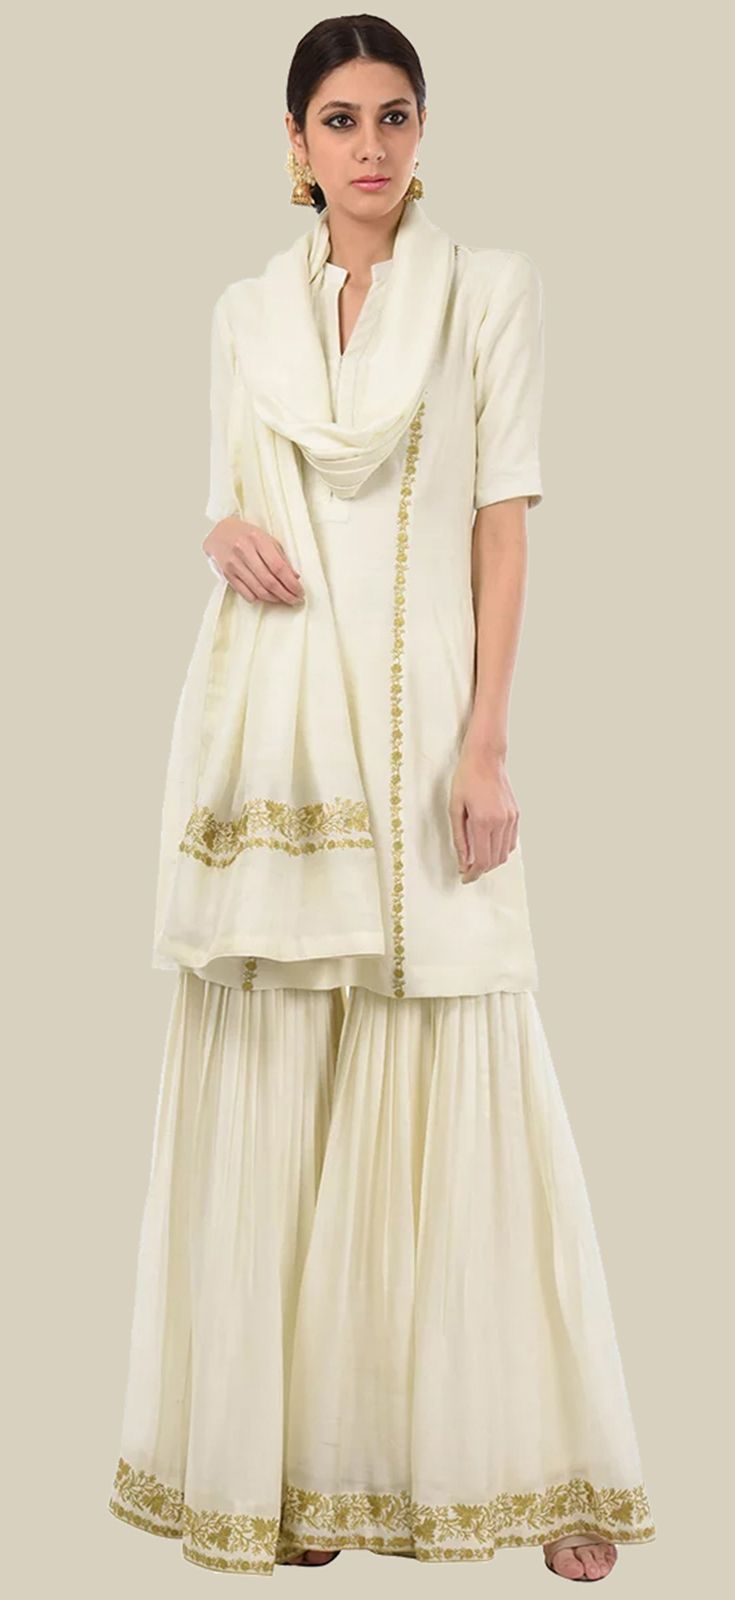 Eid 2017 Collection: Ivory Gold Tilla Embroidered Fine 120 Count Cotton Gharara Suit